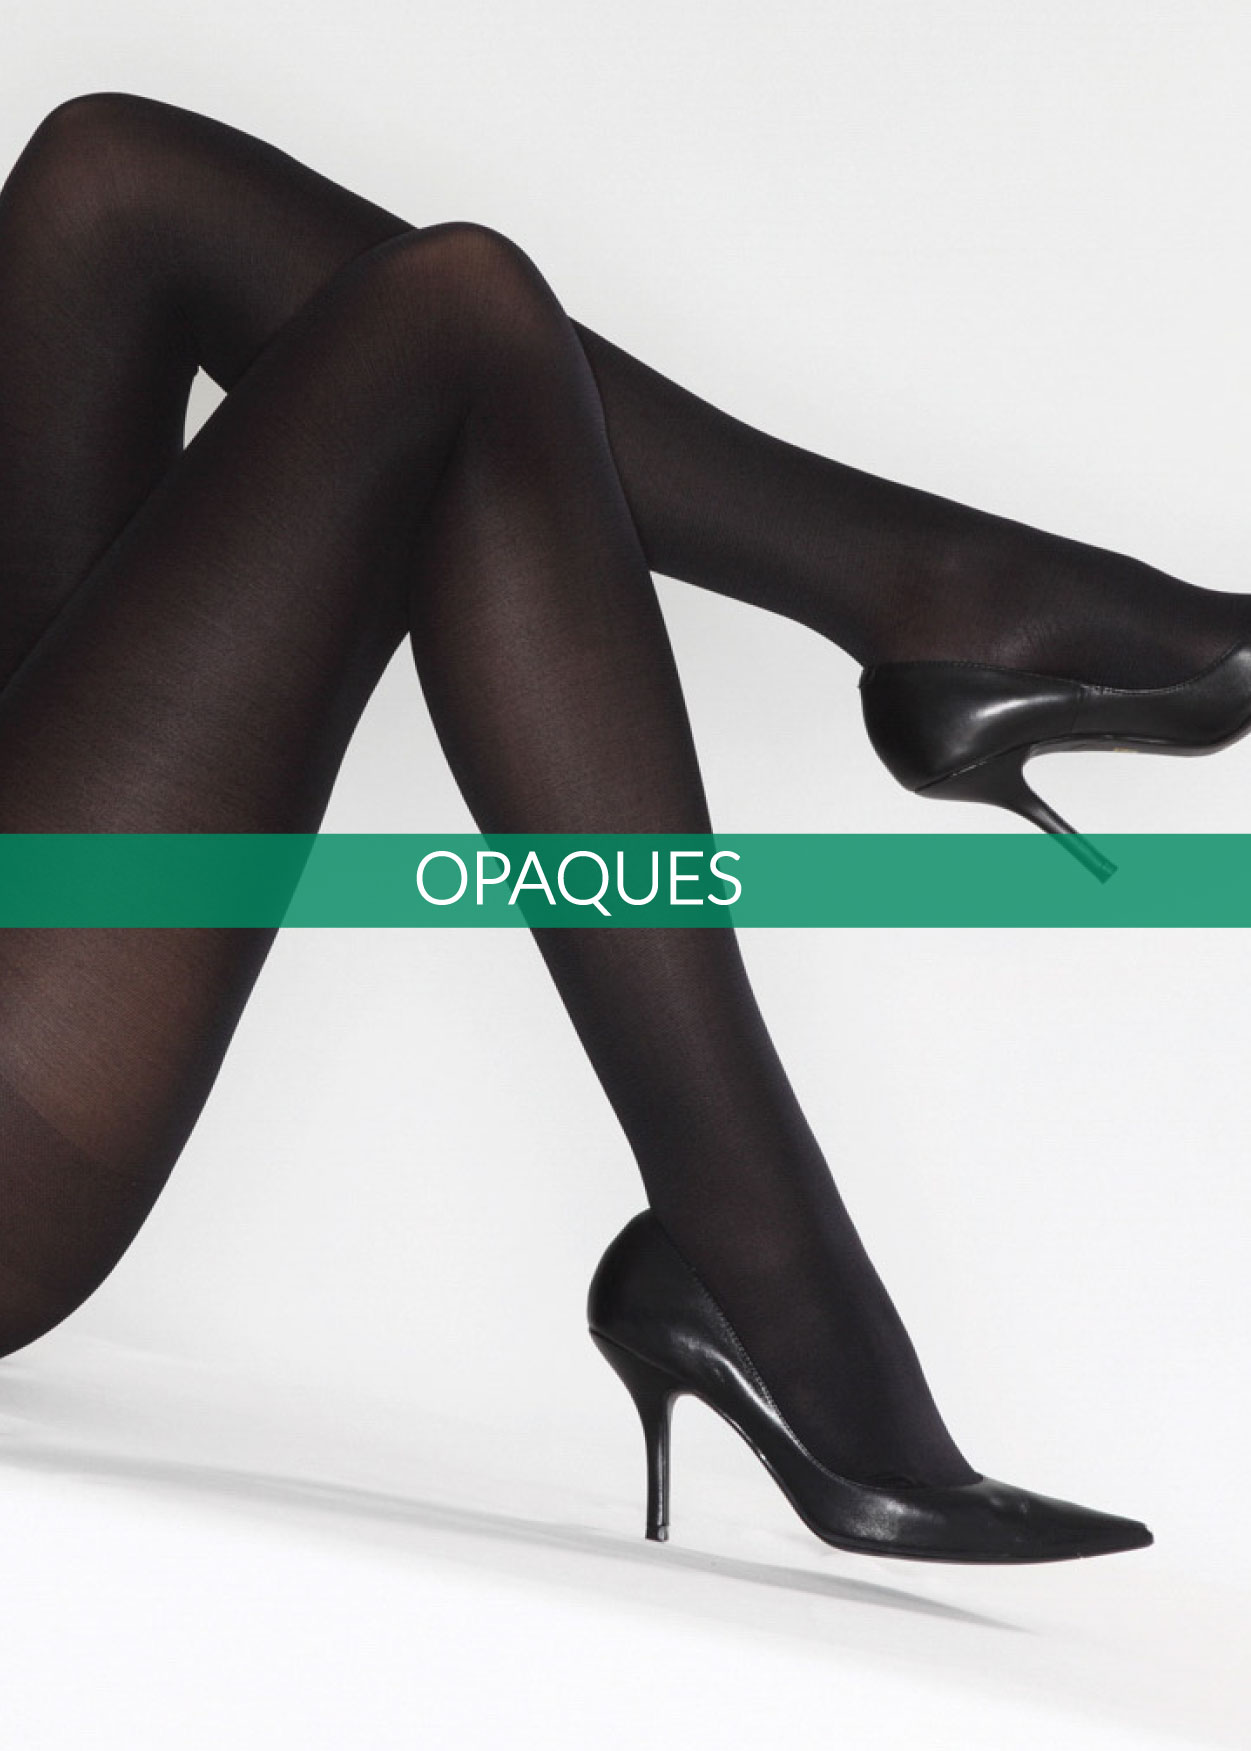 Opaques